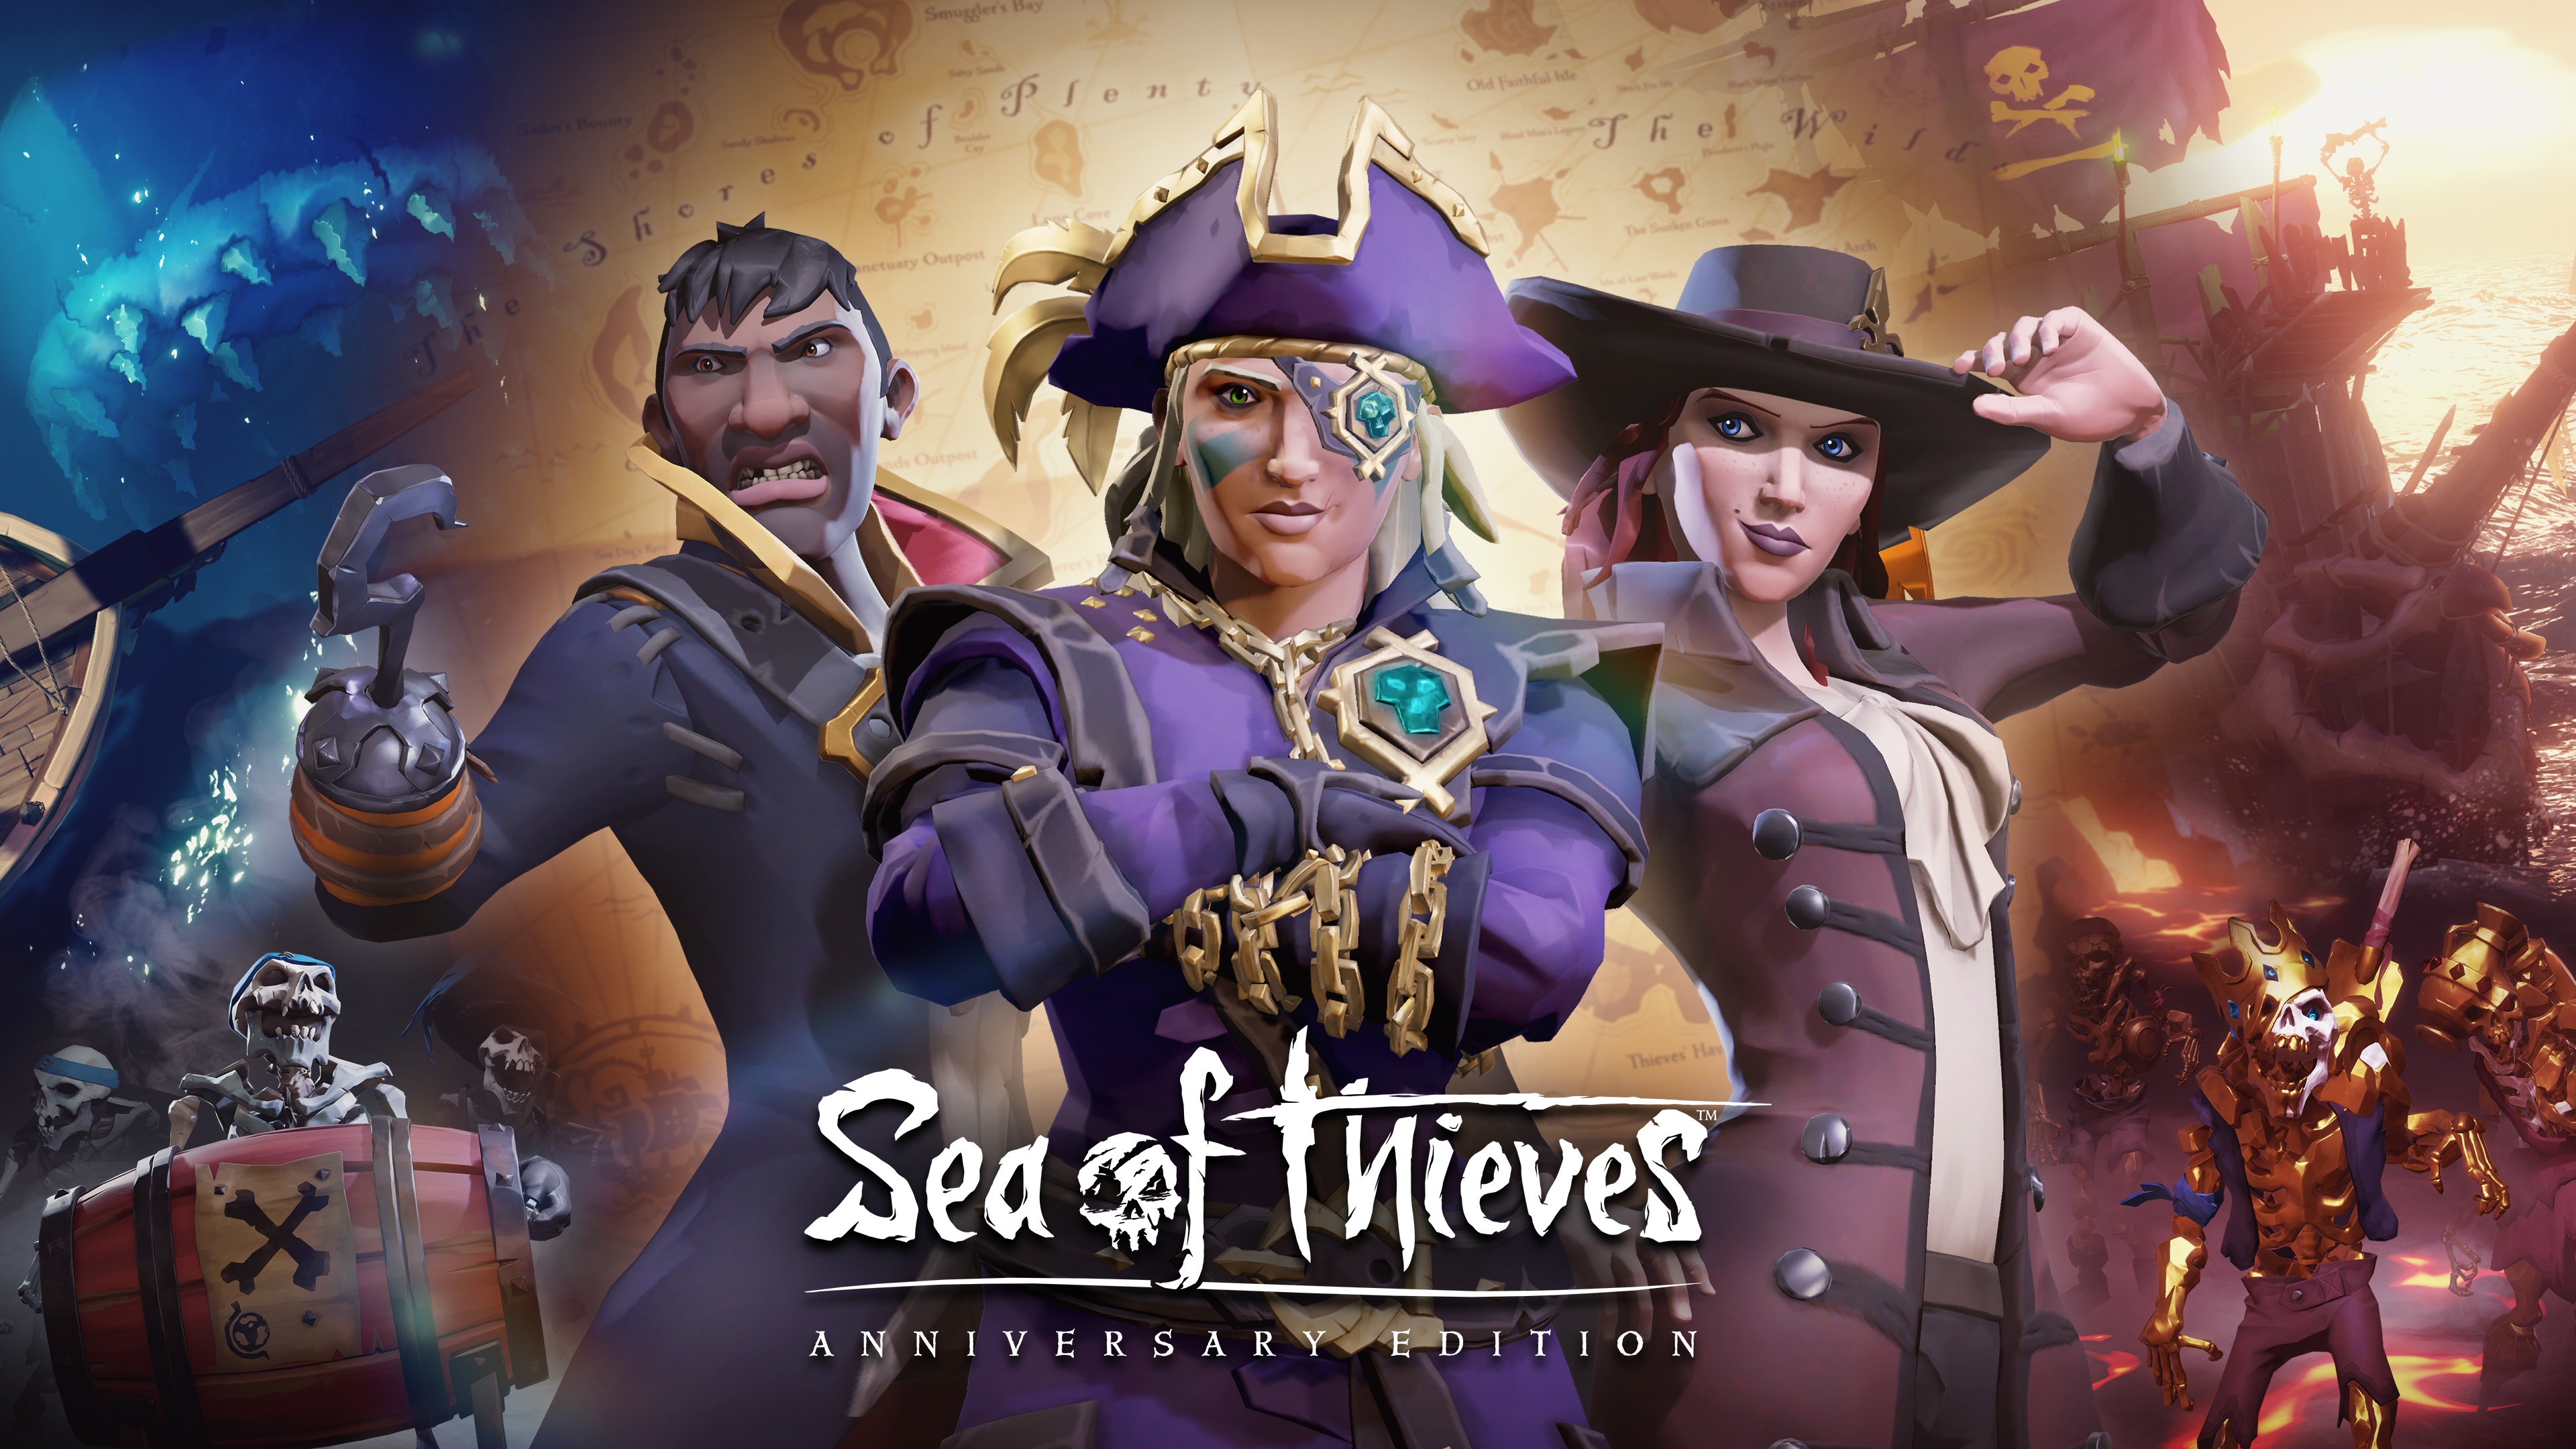 sea of thieves first anniversary 4k 1555207700 - Sea Of Thieves First Anniversary 4k - xbox games wallpapers, sea of thieves wallpapers, pc games wallpapers, hd-wallpapers, games wallpapers, 4k-wallpapers, 2019 games wallpapers